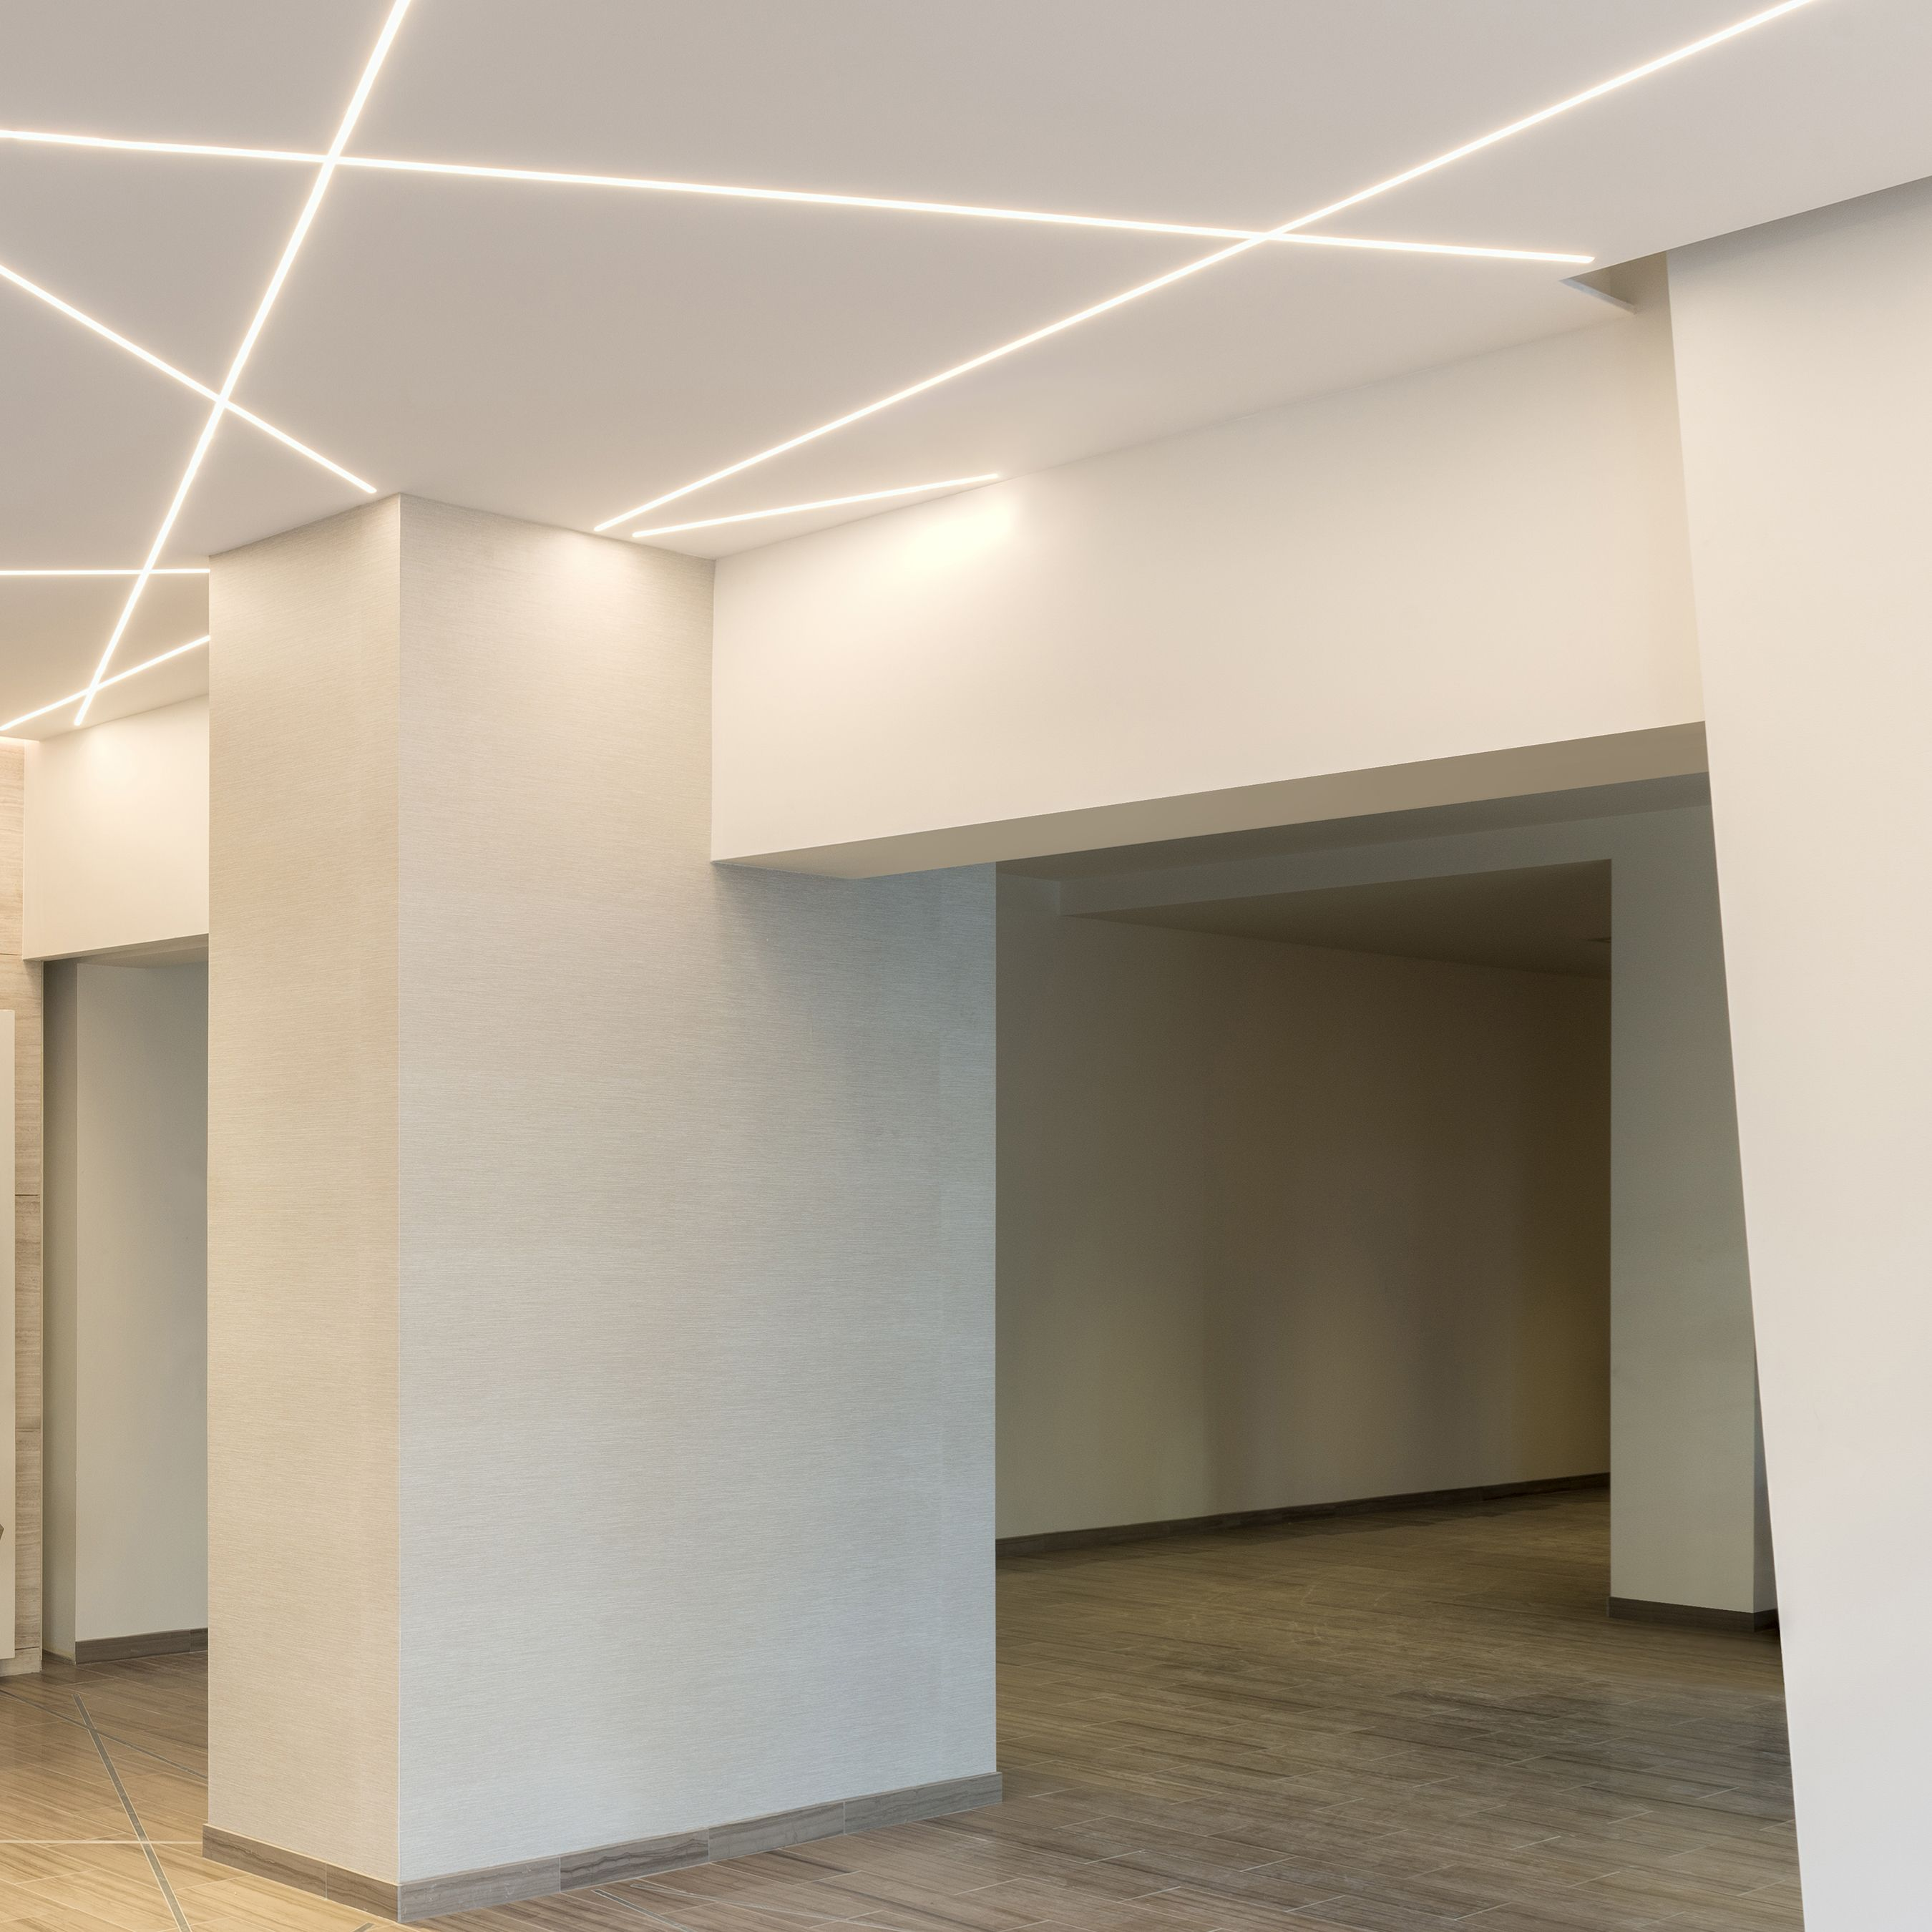 pure lighting stratus led. truline .5a creates glare-free architectural lighting accents within this commercial space | led pure stratus led